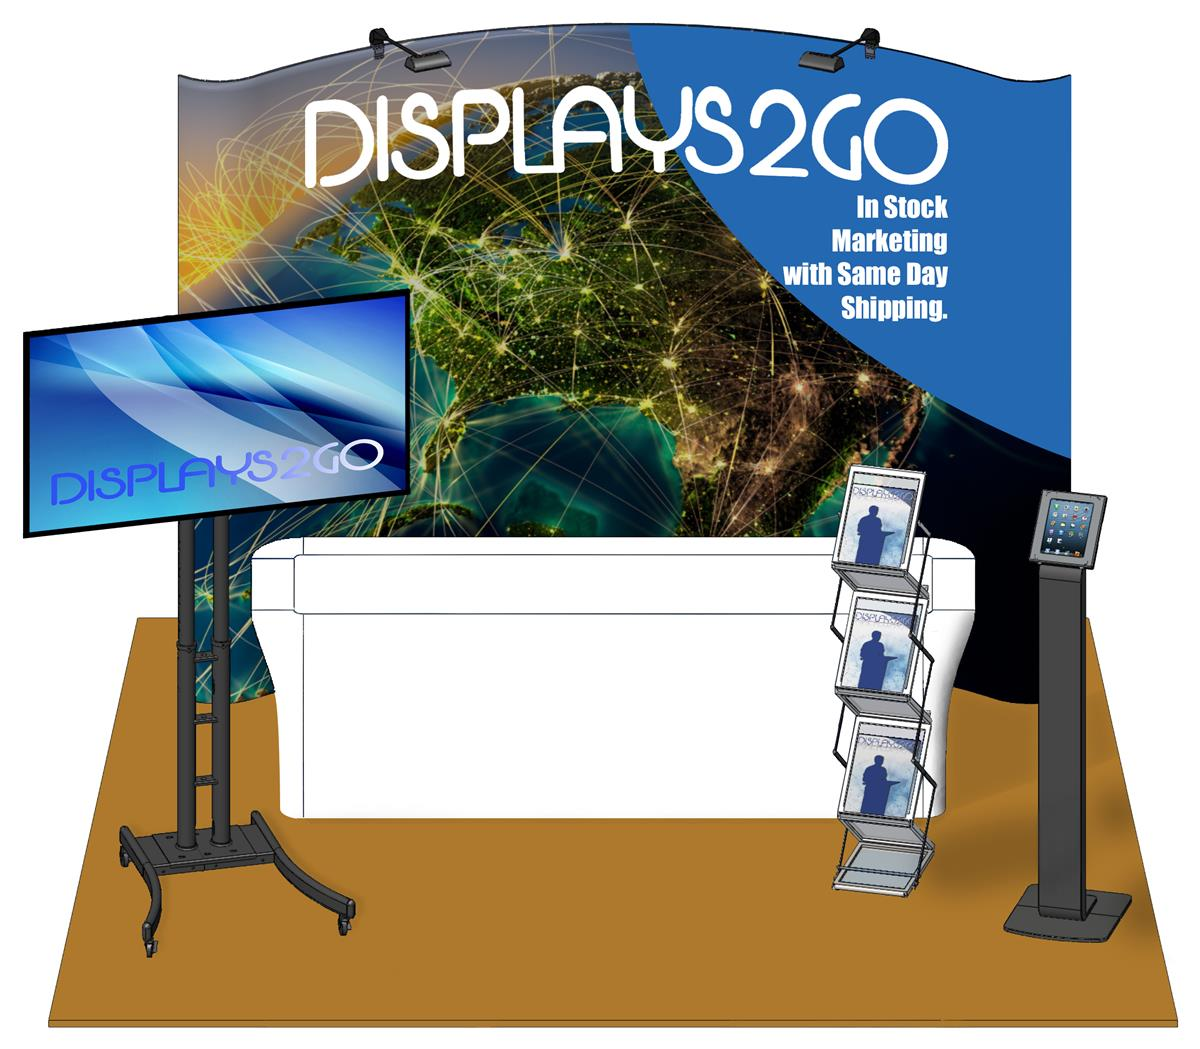 Exhibition Booth Clipart : Trade show booth package printed banner with